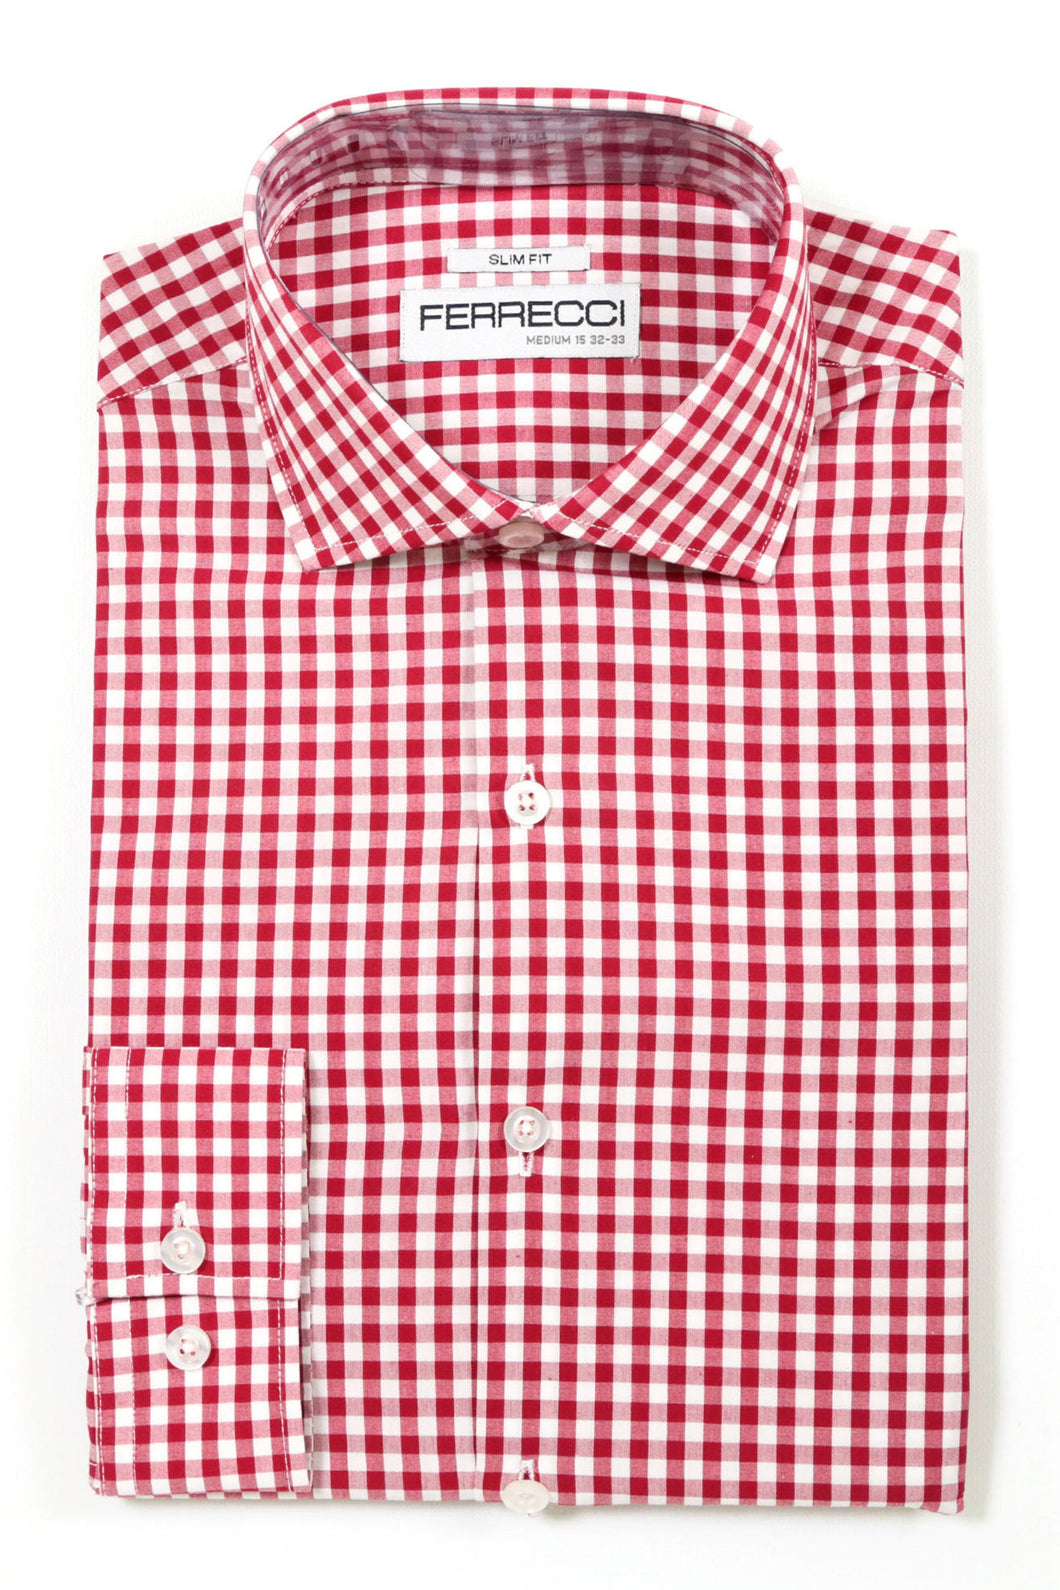 Ferrecci Red Gingham Check Slim Fit Dress Shirt